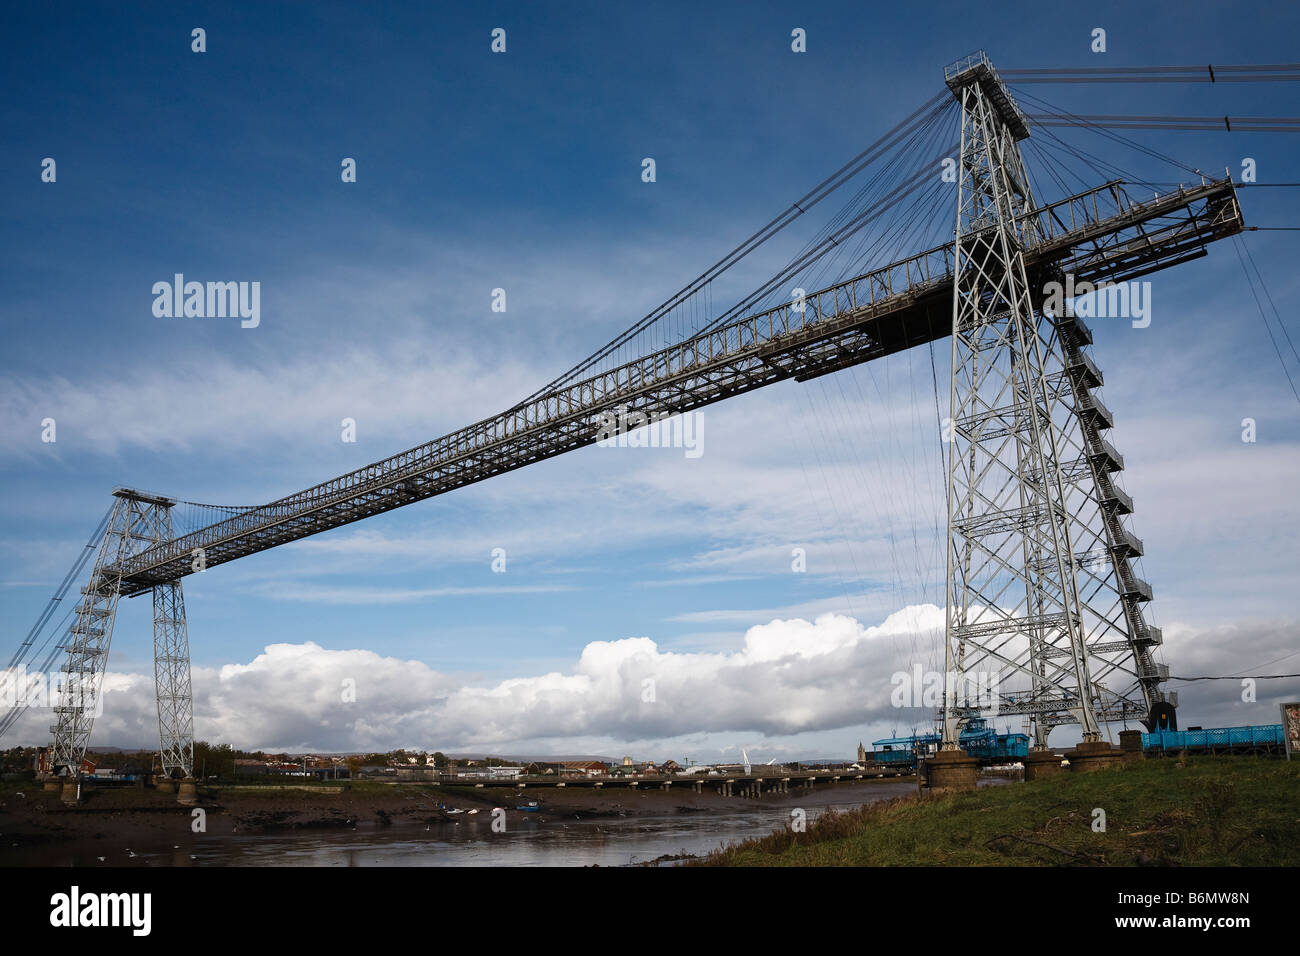 The Transporter Bridge, Newport, South Wales - Stock Image